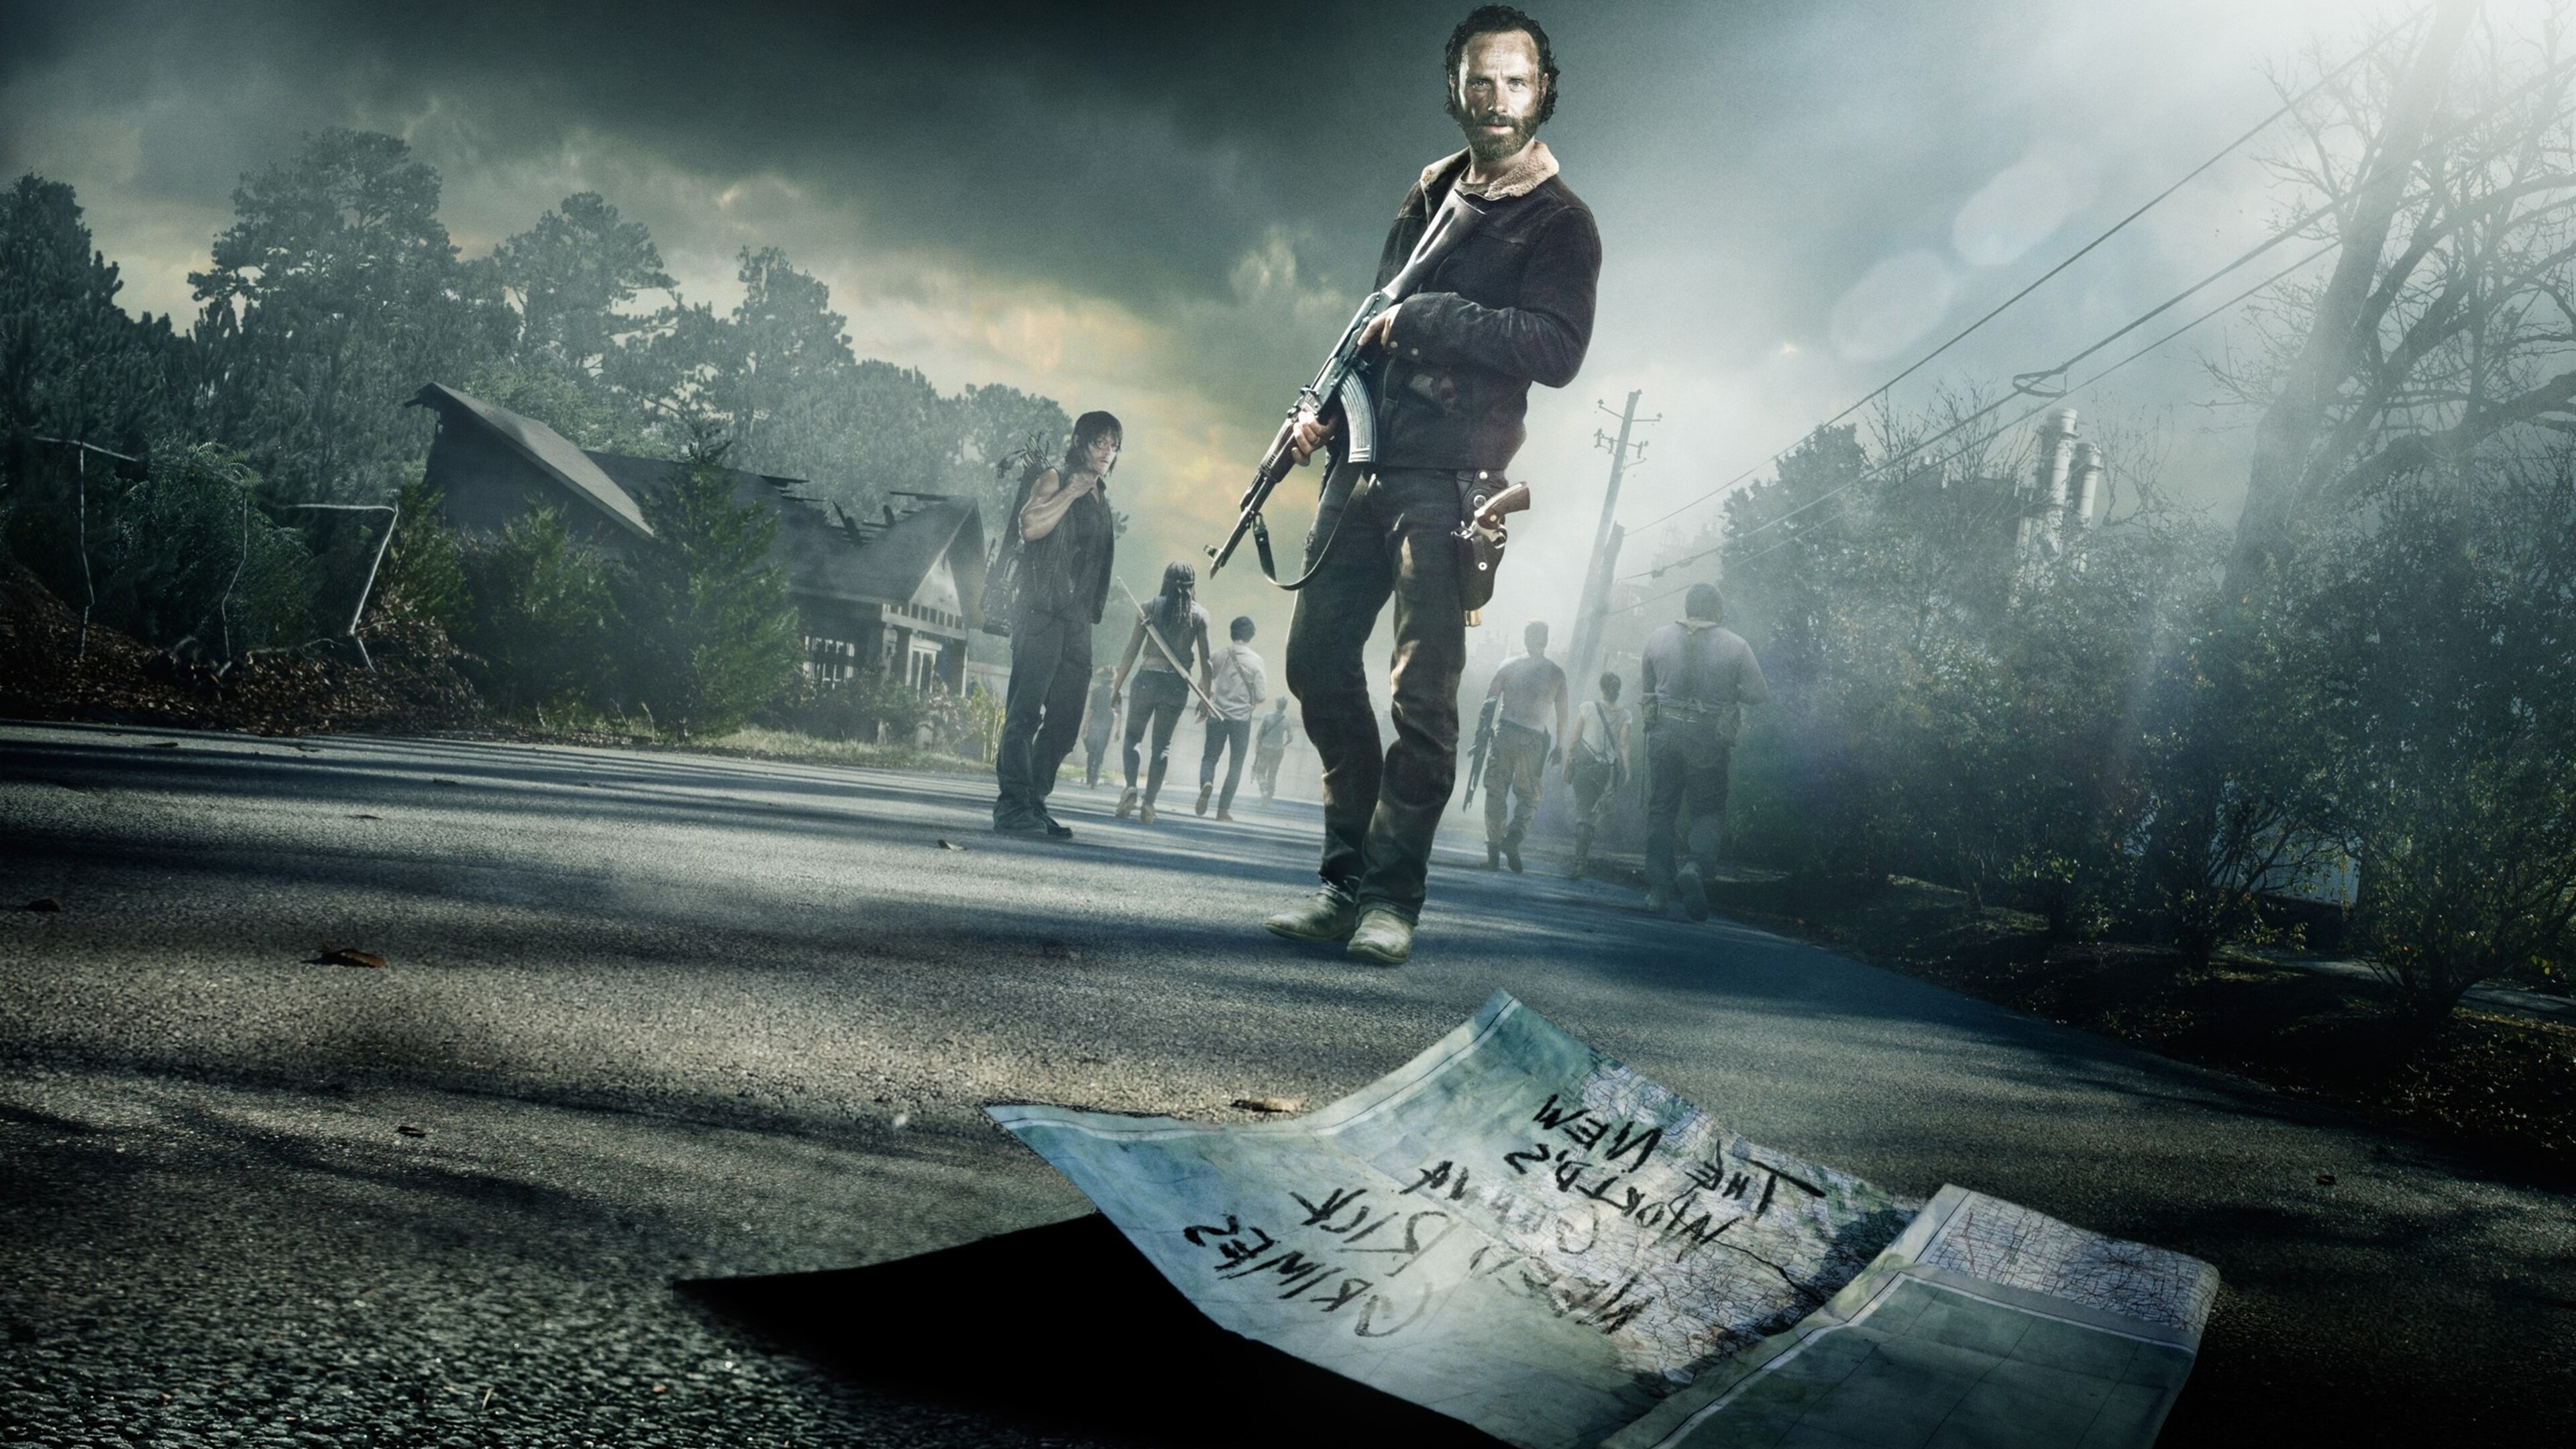 3840x2160 The Walking Dead Season 5 4k Hd 4k Wallpapers Images